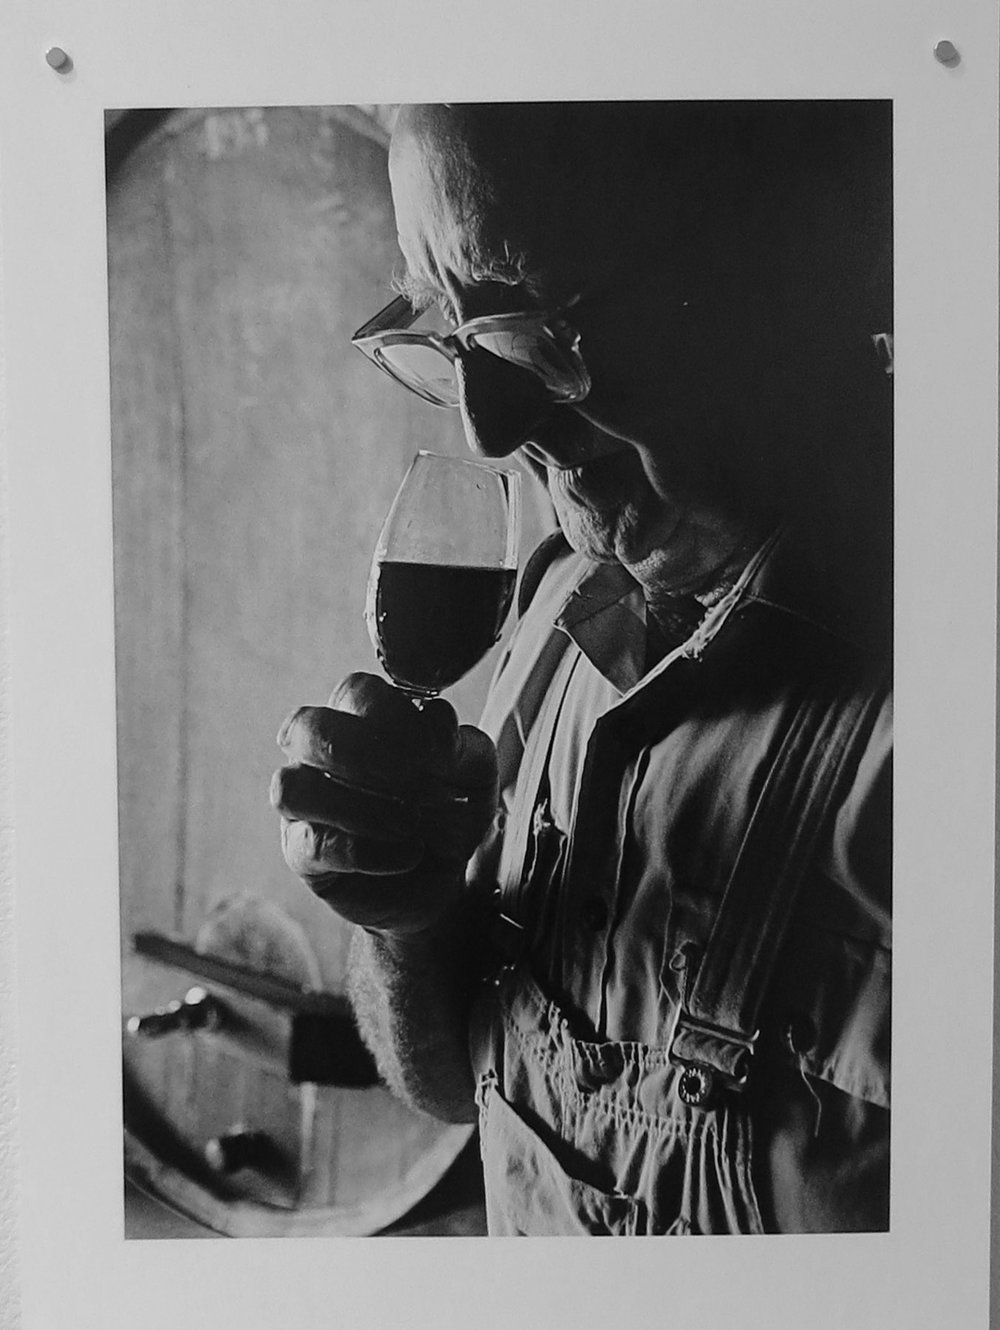 64. Richard Woldendorp, 'Jack Mann, Houghton Vineyard, Swan Valley WA', BW373, taken in c.1970, printed in 2018